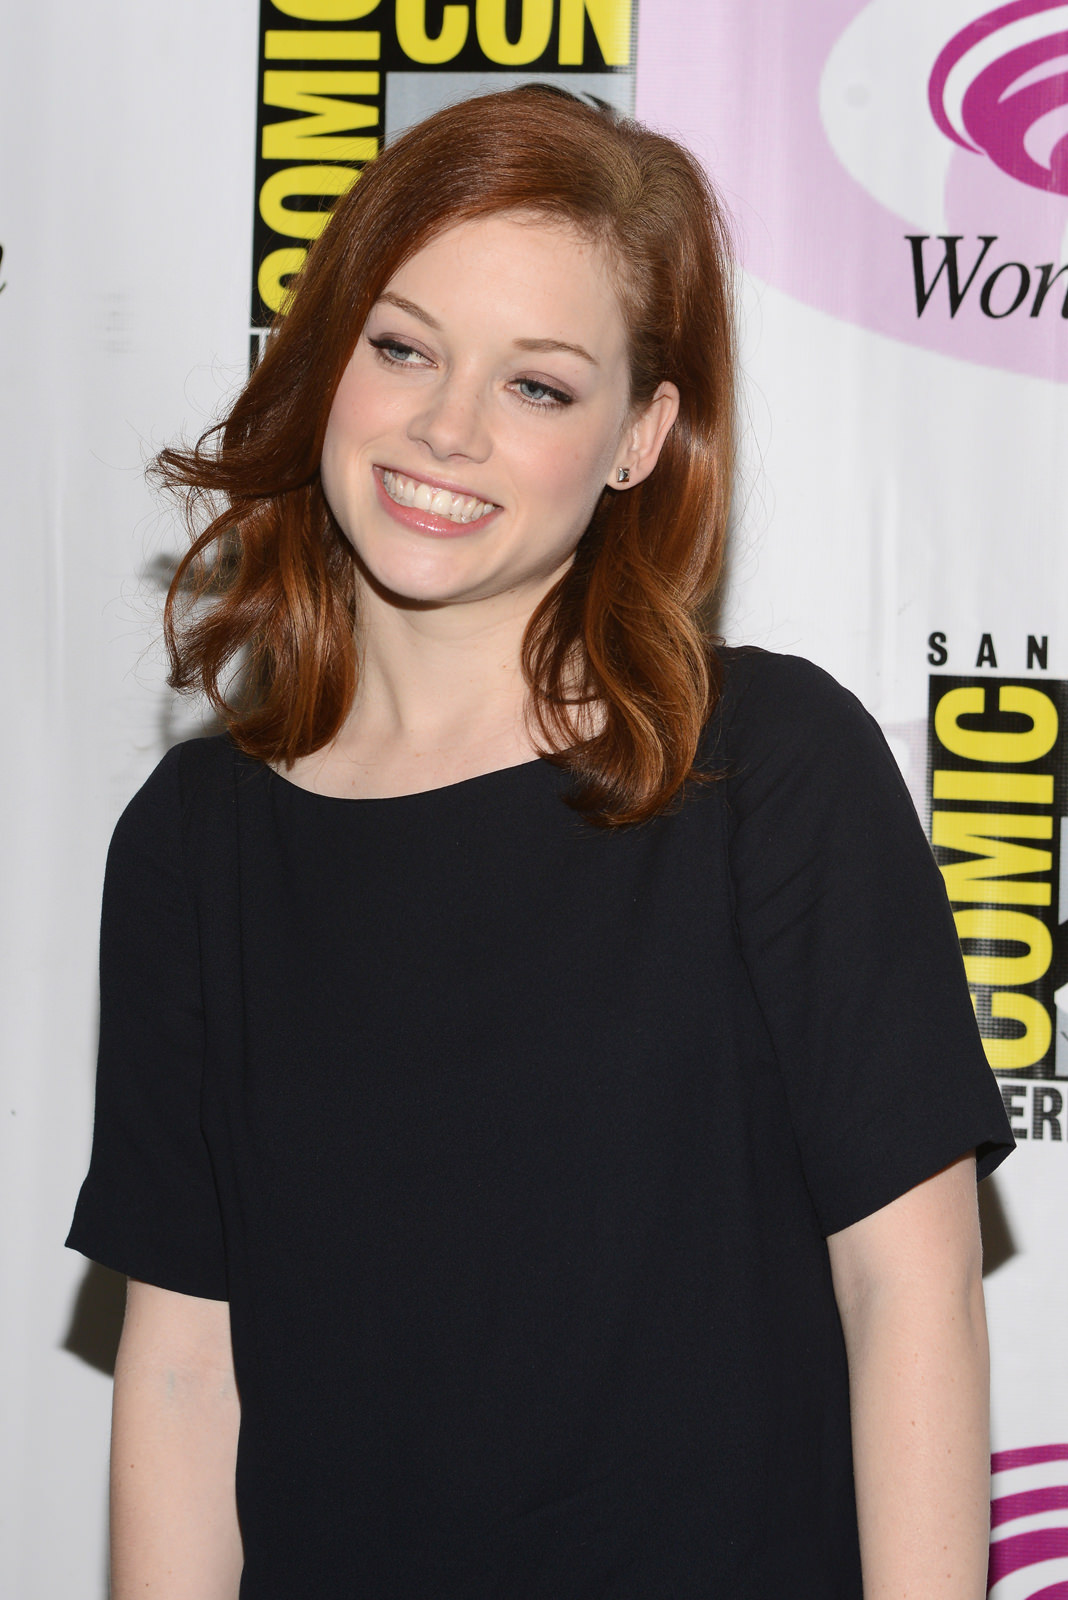 Jane Levy Photo Gallery